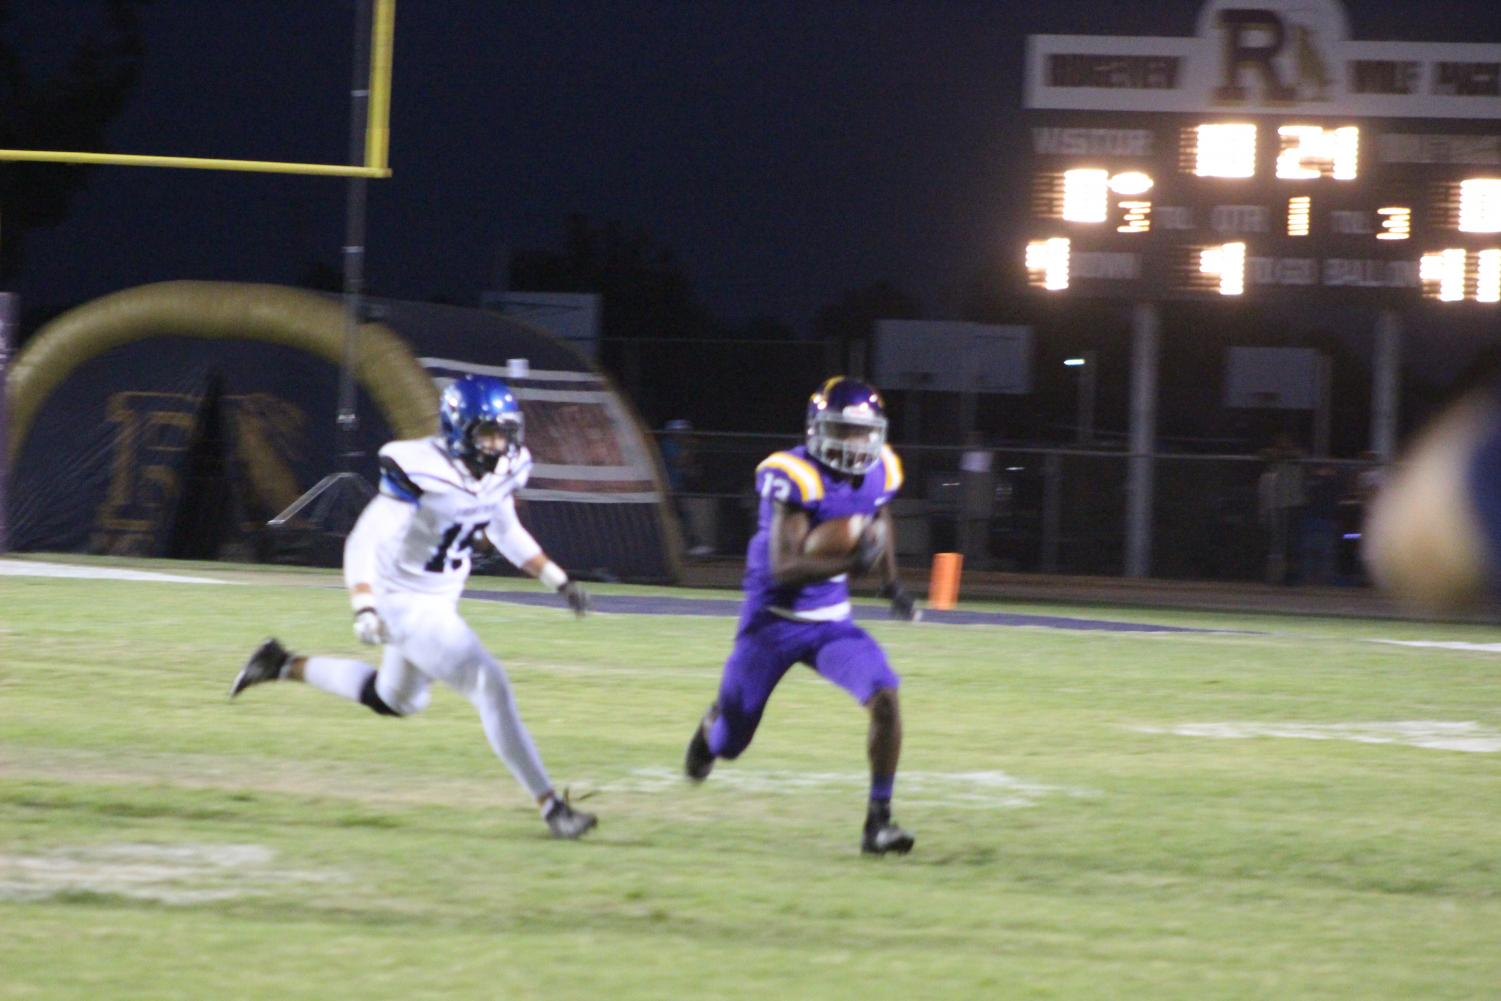 Zion Hall runs with the ball against Frontier player during a home game.